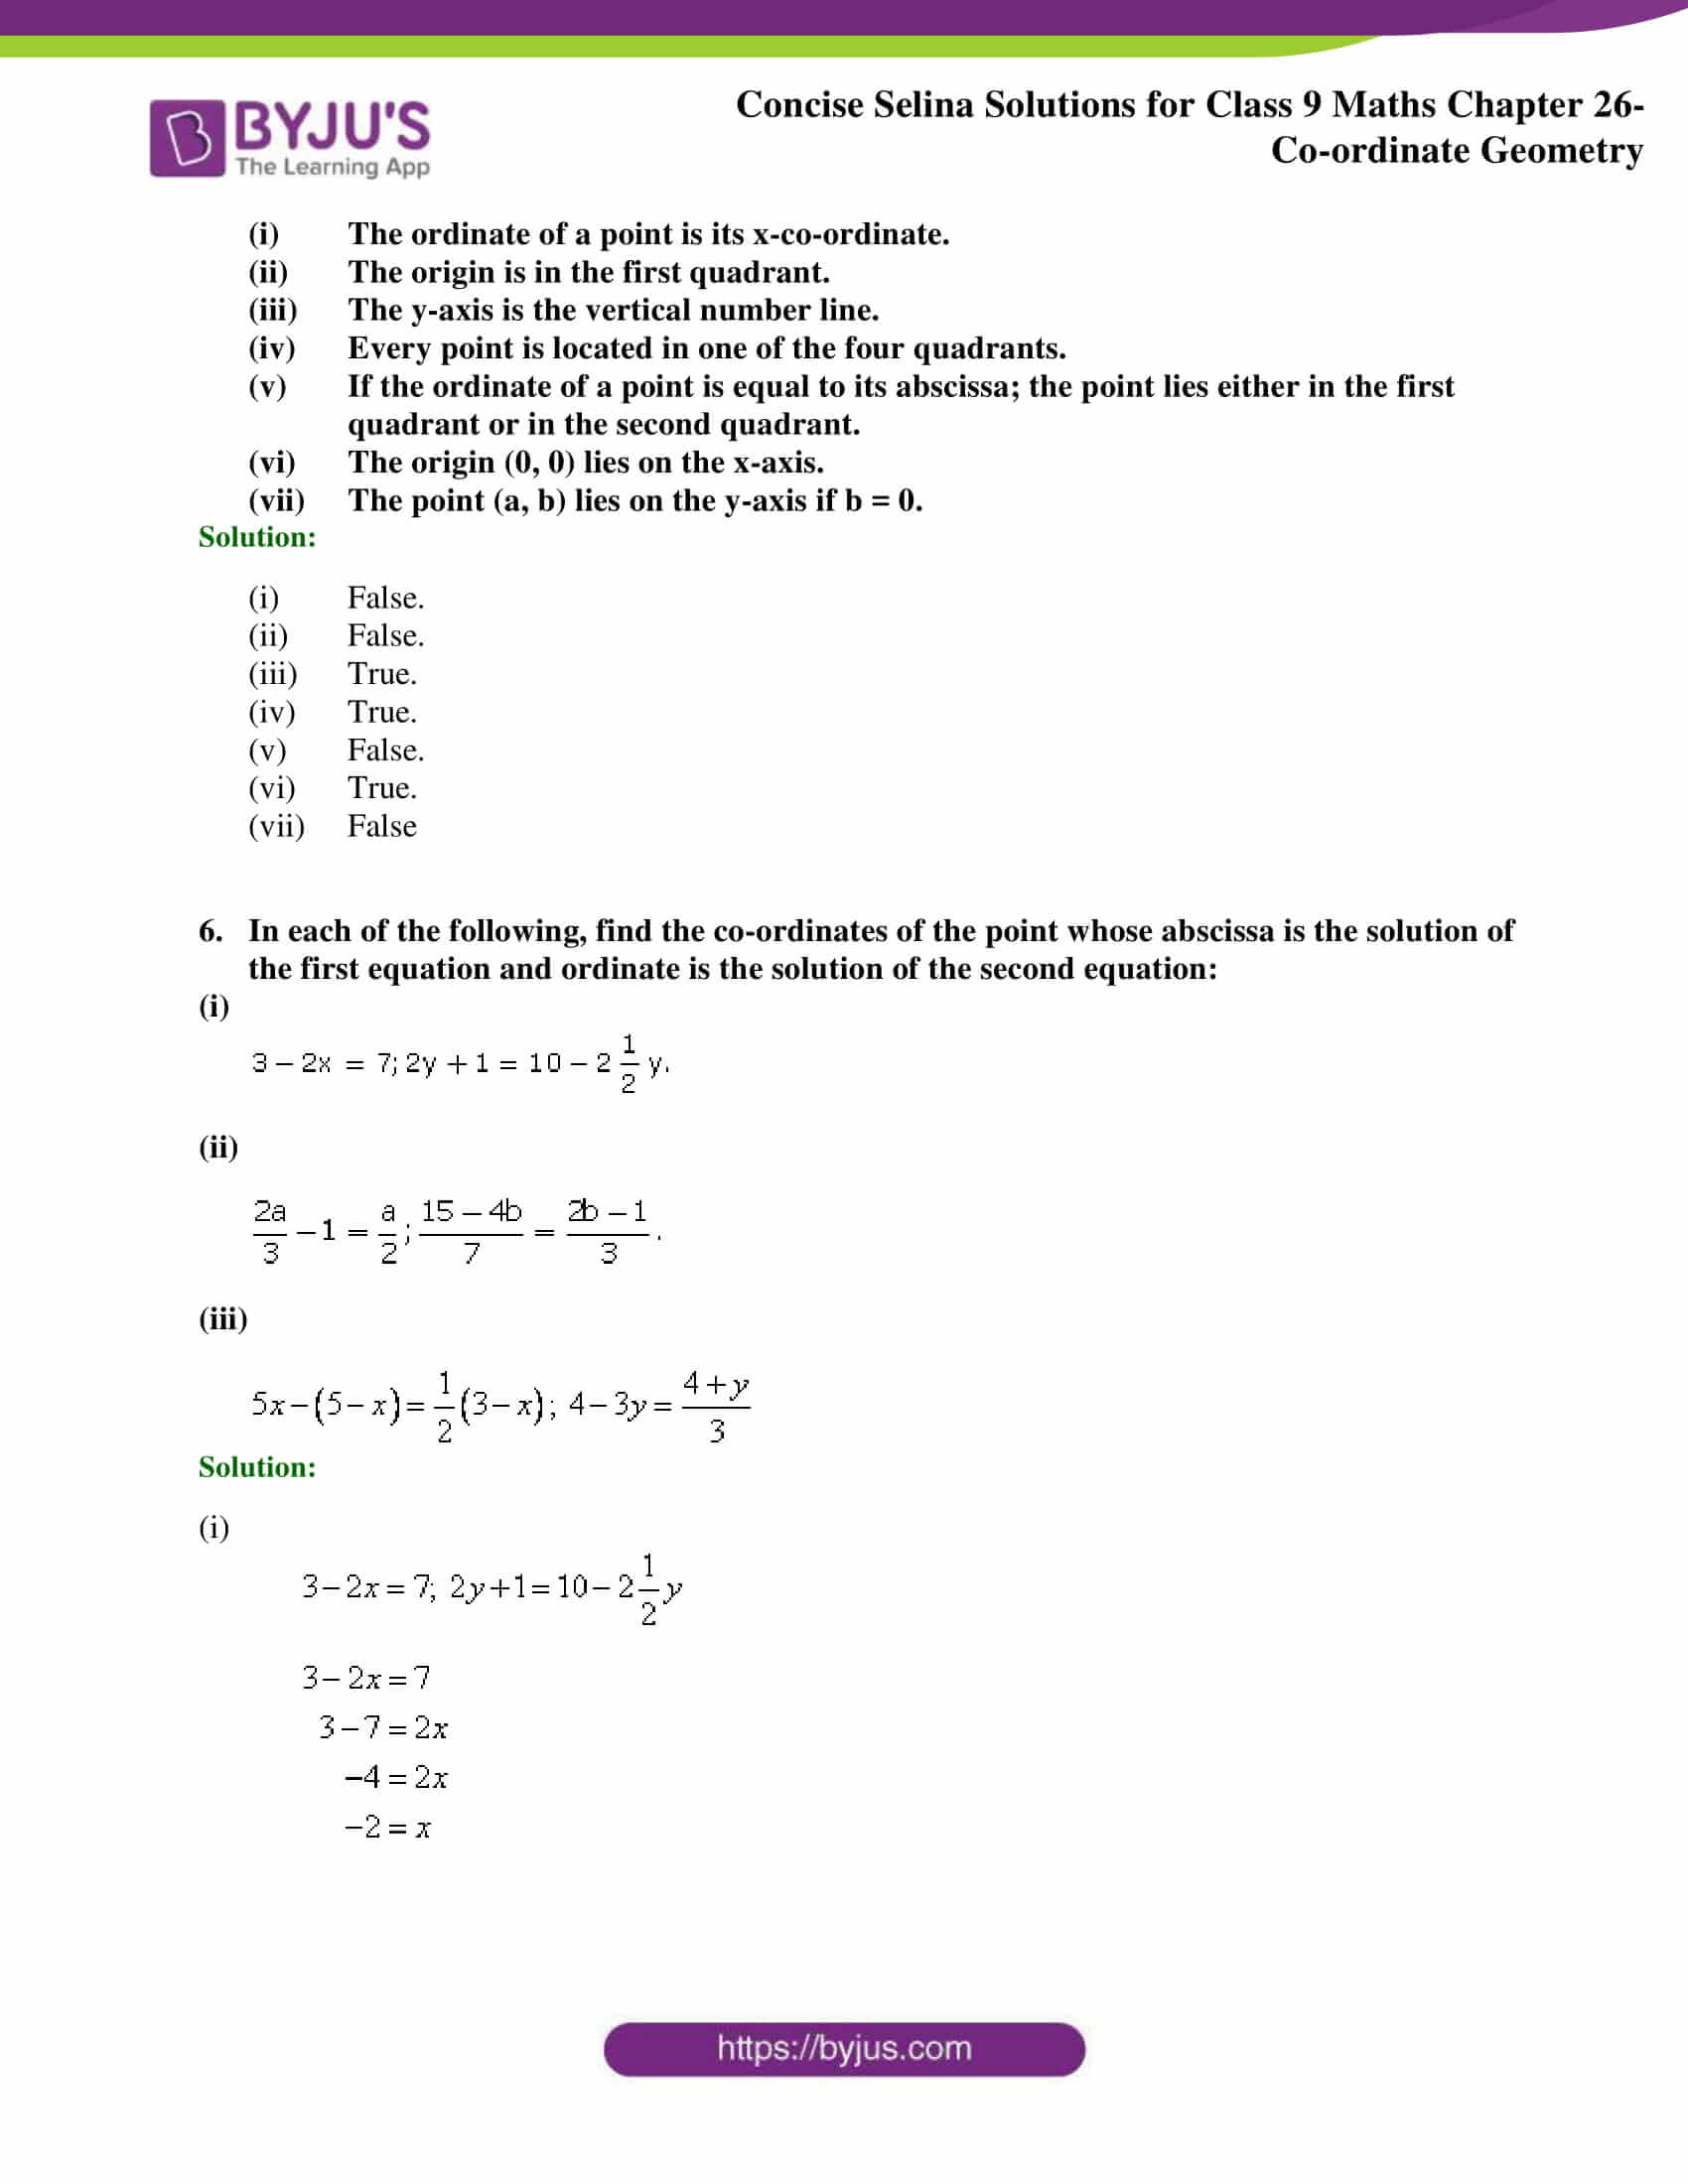 Selina Solutions for Class 9 Maths Chapter 26 part 05